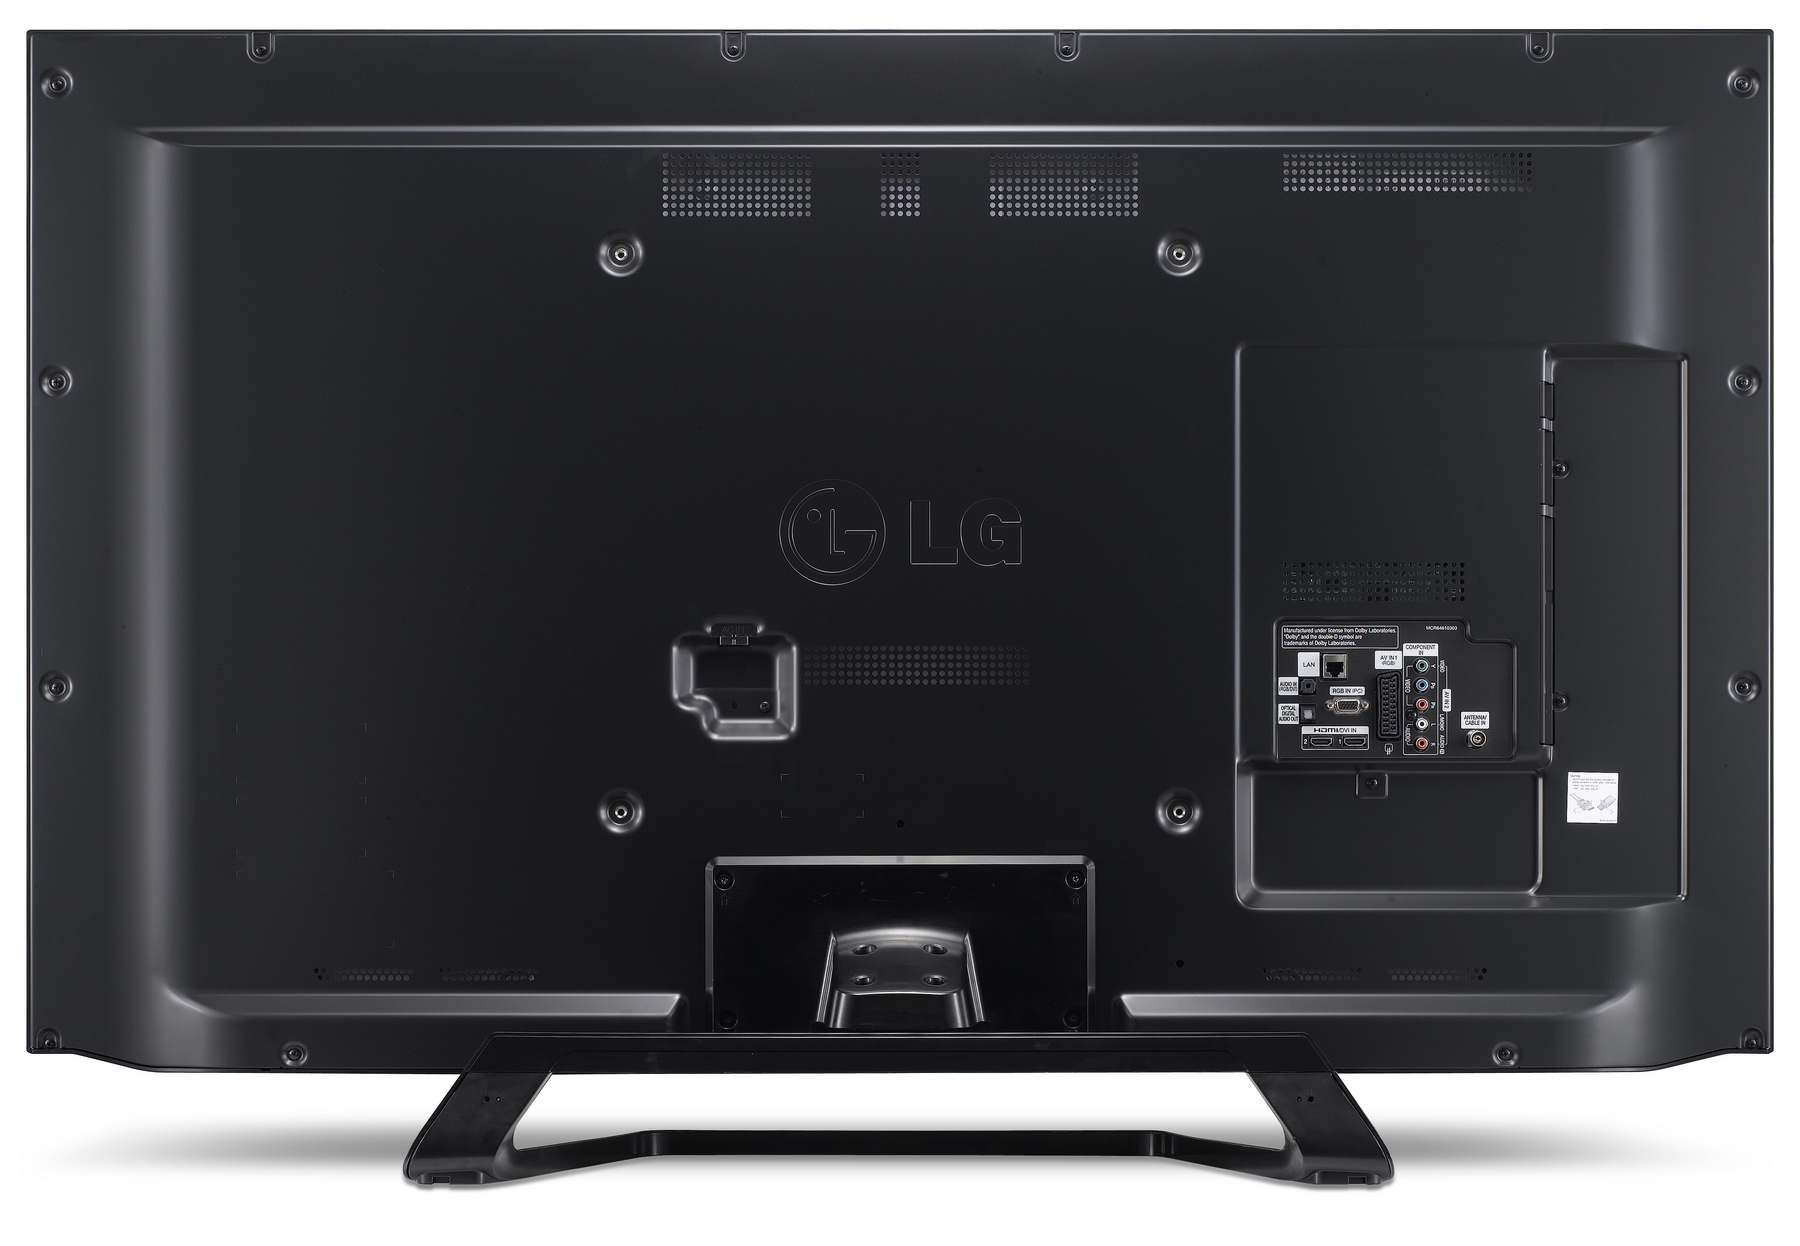 lg 47lm620s 47 119 cm 3d full hd led tv grx electro. Black Bedroom Furniture Sets. Home Design Ideas